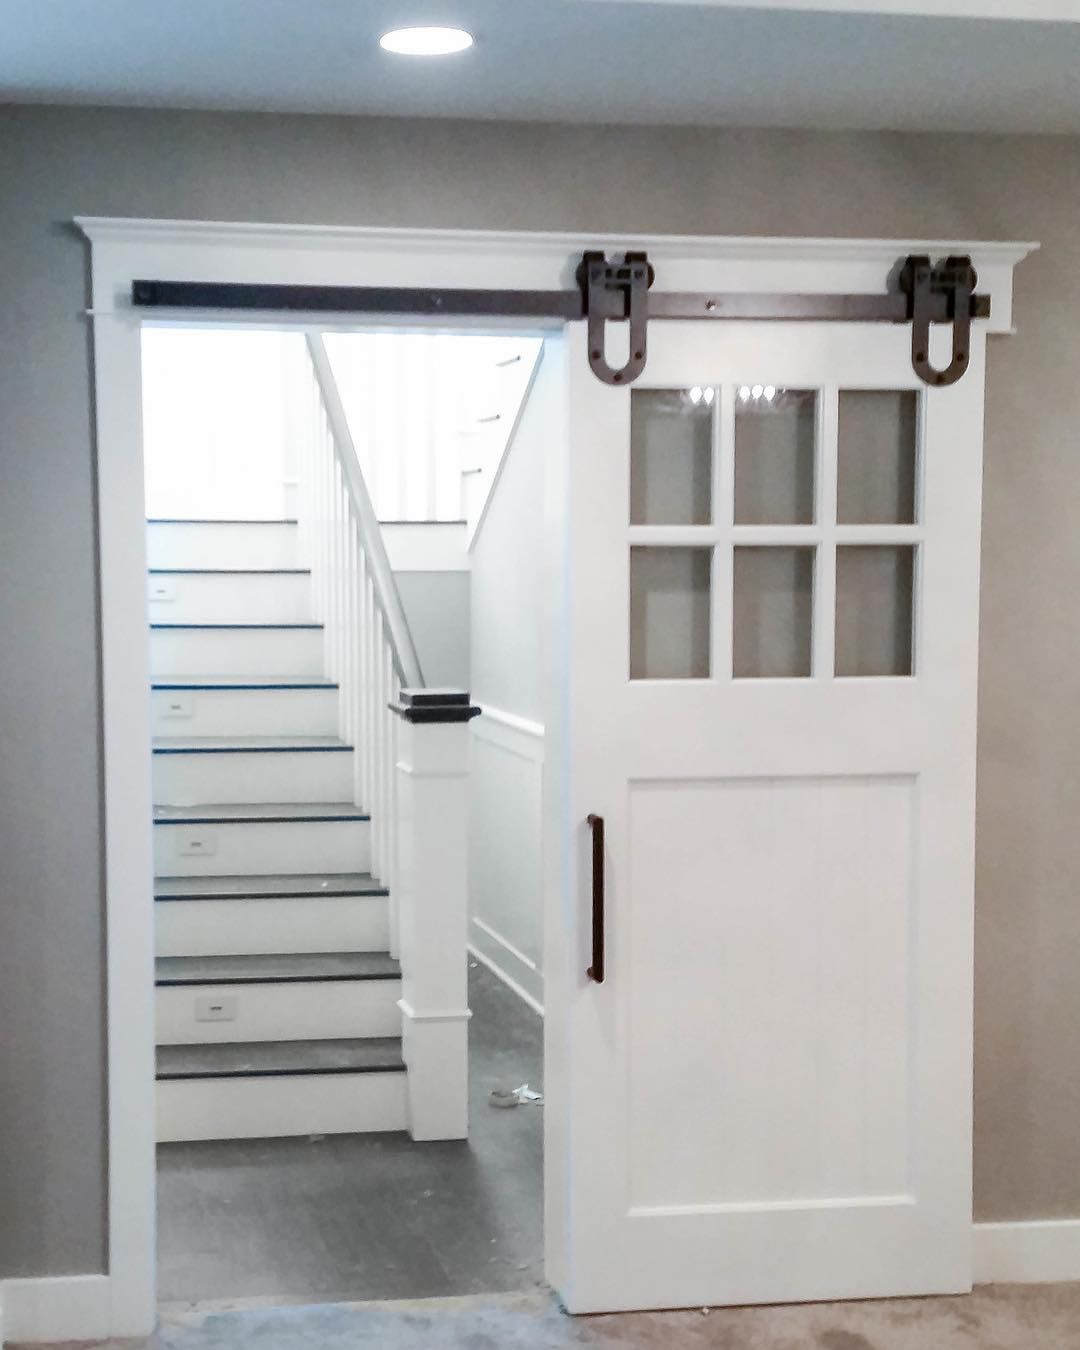 Basement Door Ideas adding the barn door at the bottom of the staircase is a great